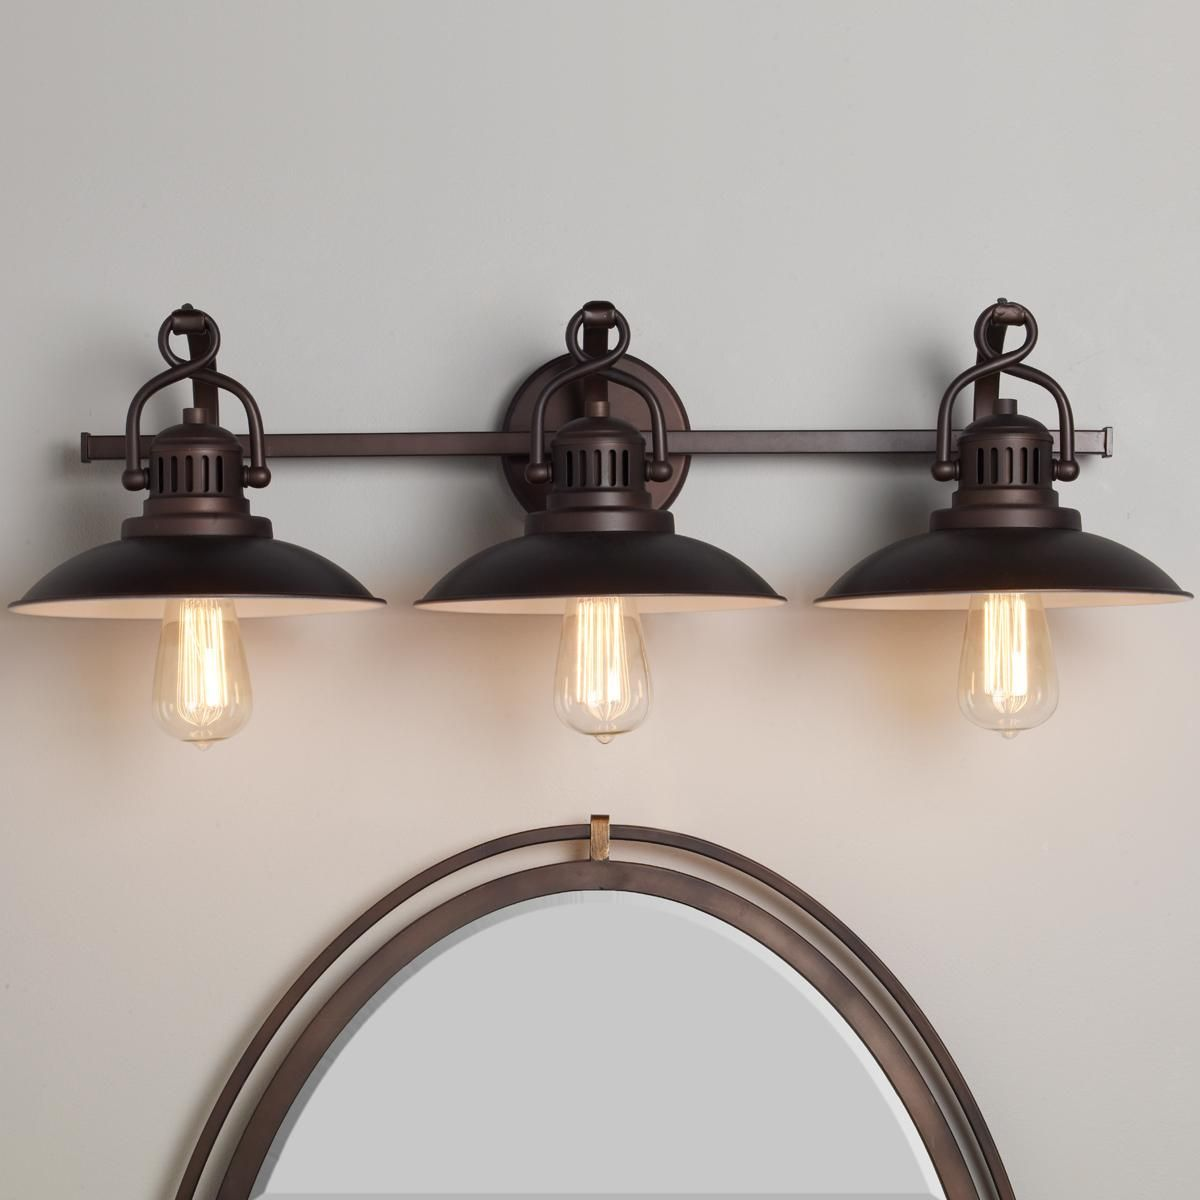 Vintage Bathroom Vanity Lights station lantern bath light - 3 light | bath light, bronze finish